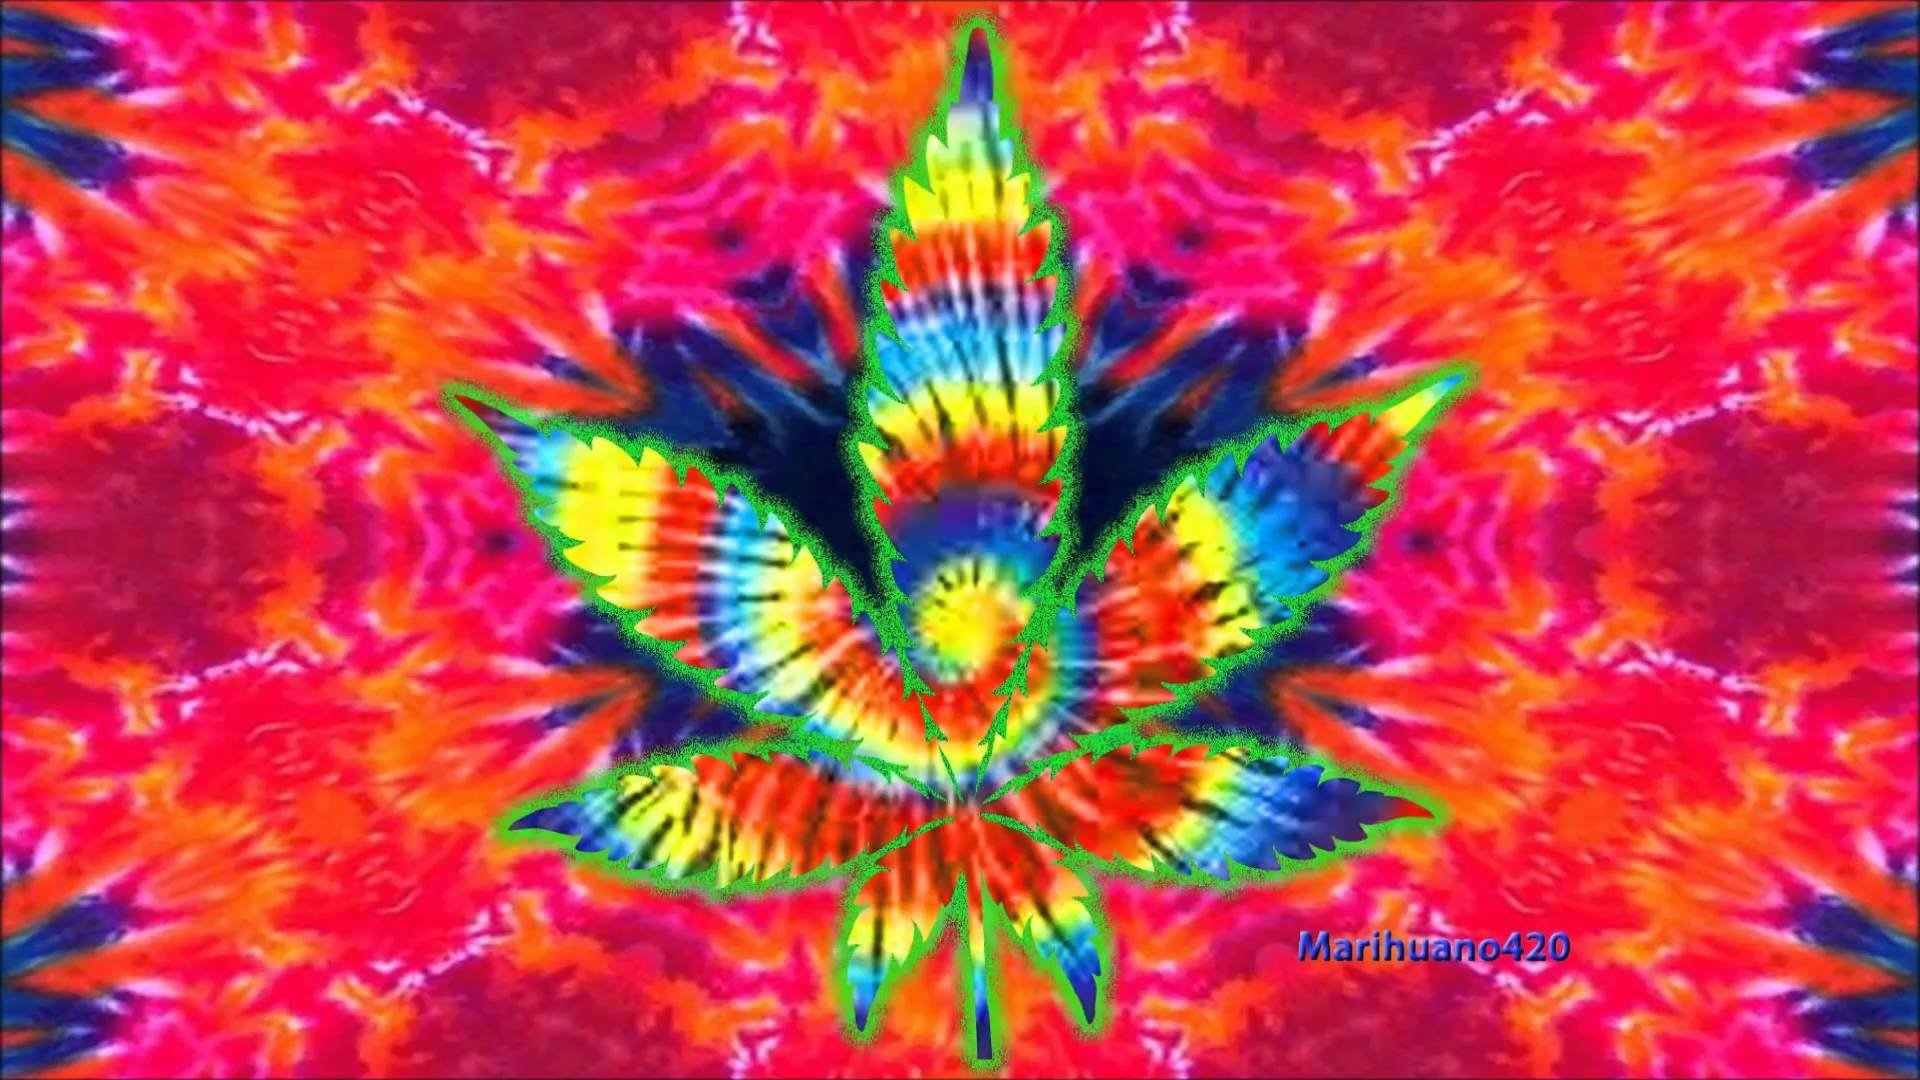 Psychedelic Art Hd Wallpaper Background Image 1920x1080